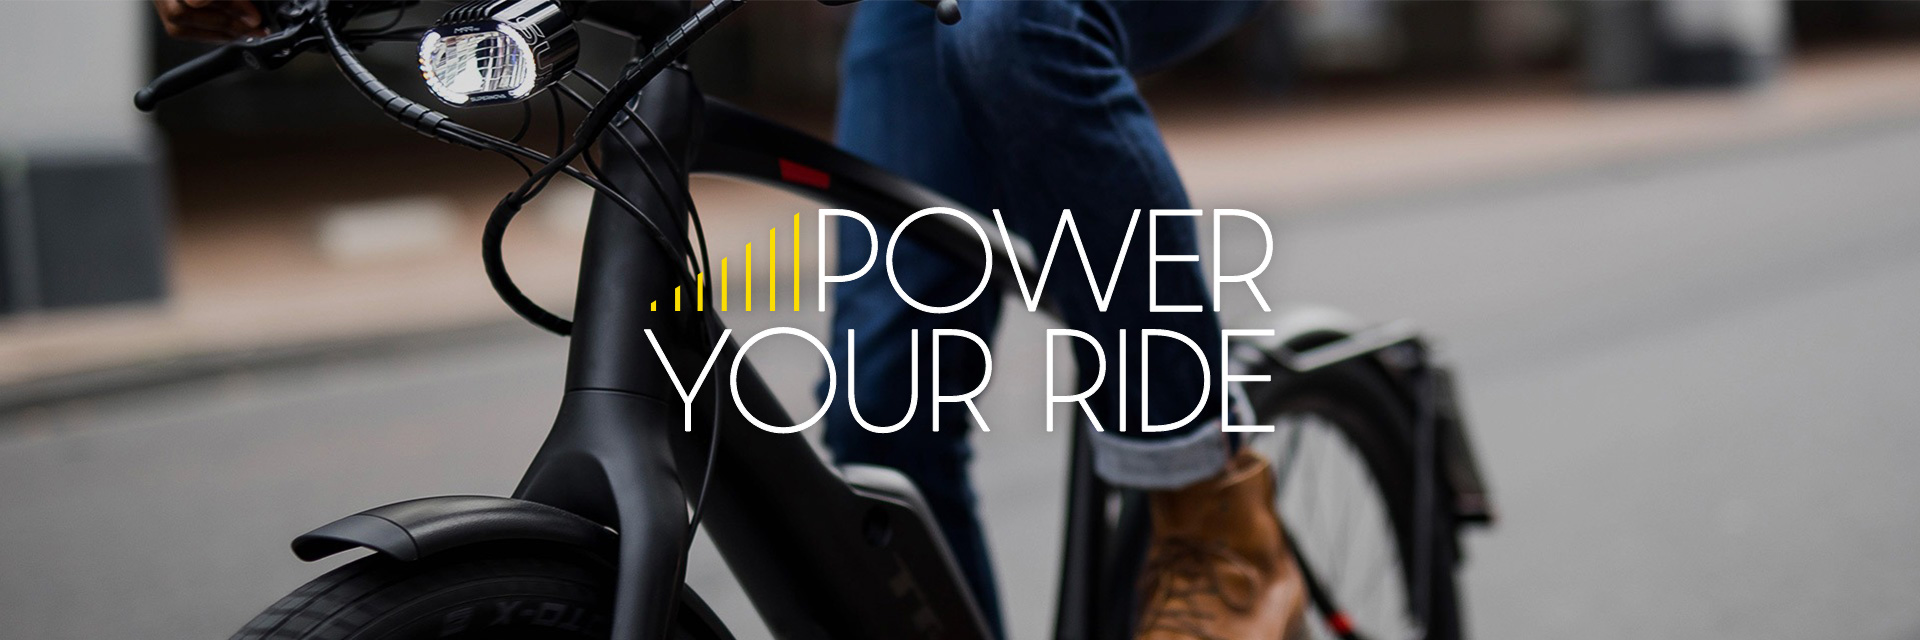 Power Your Ride